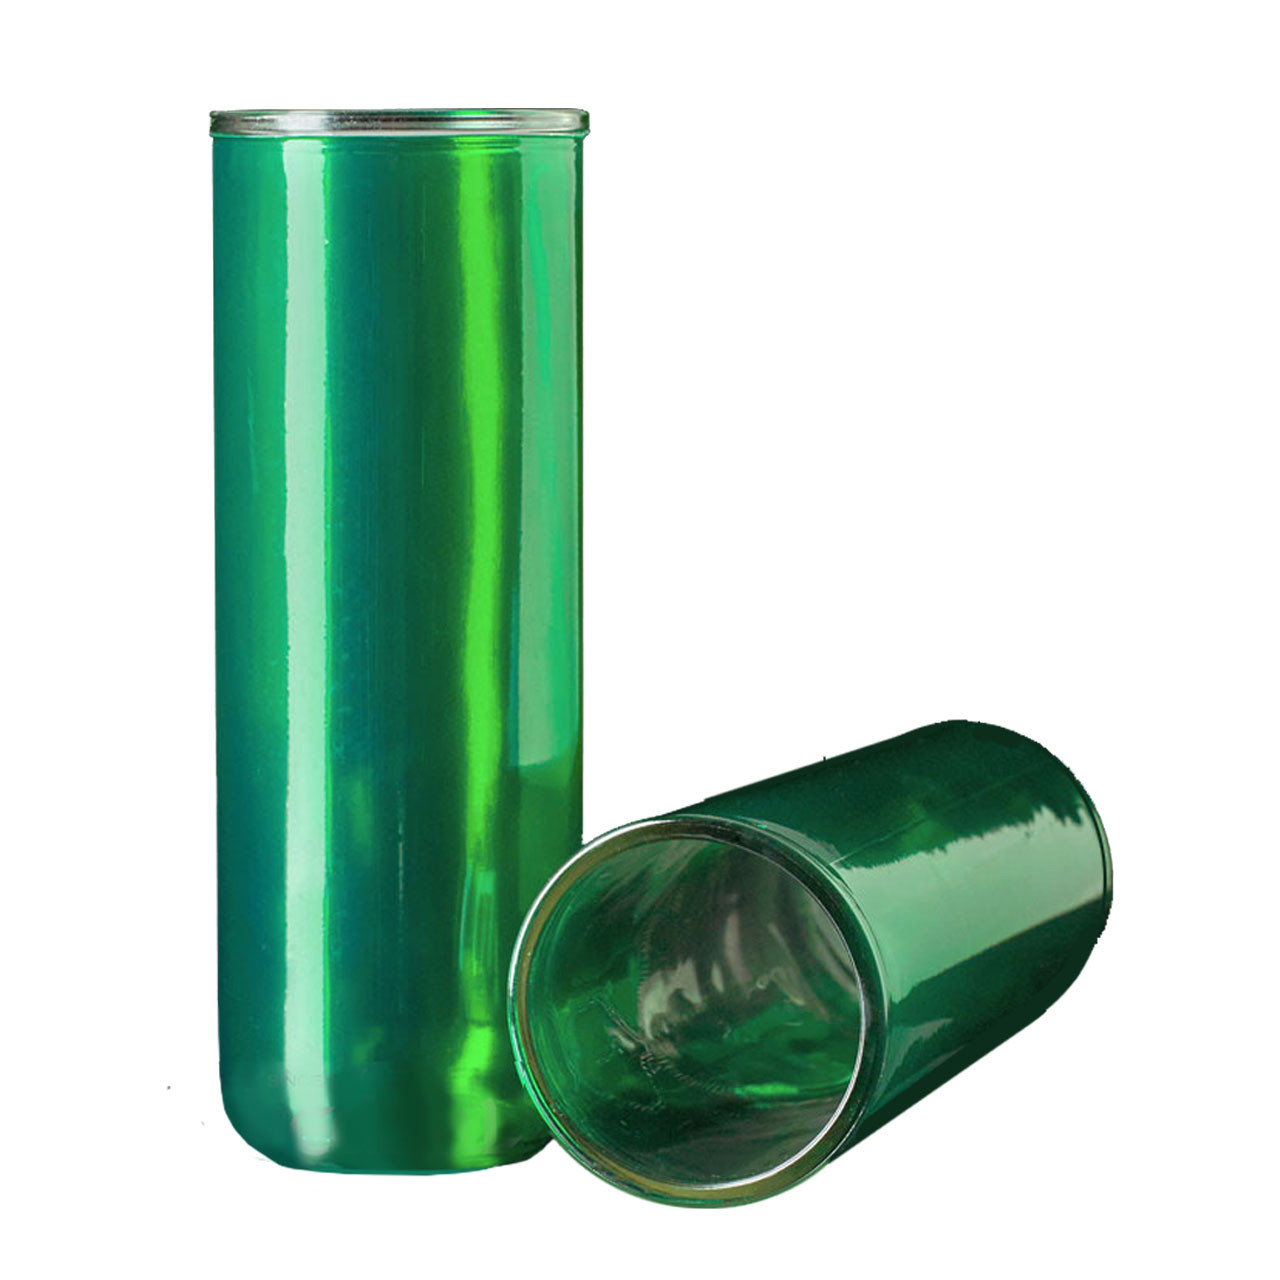 Green Globe for 5 Day, 6 Day or 7 Day plastic candle inserts